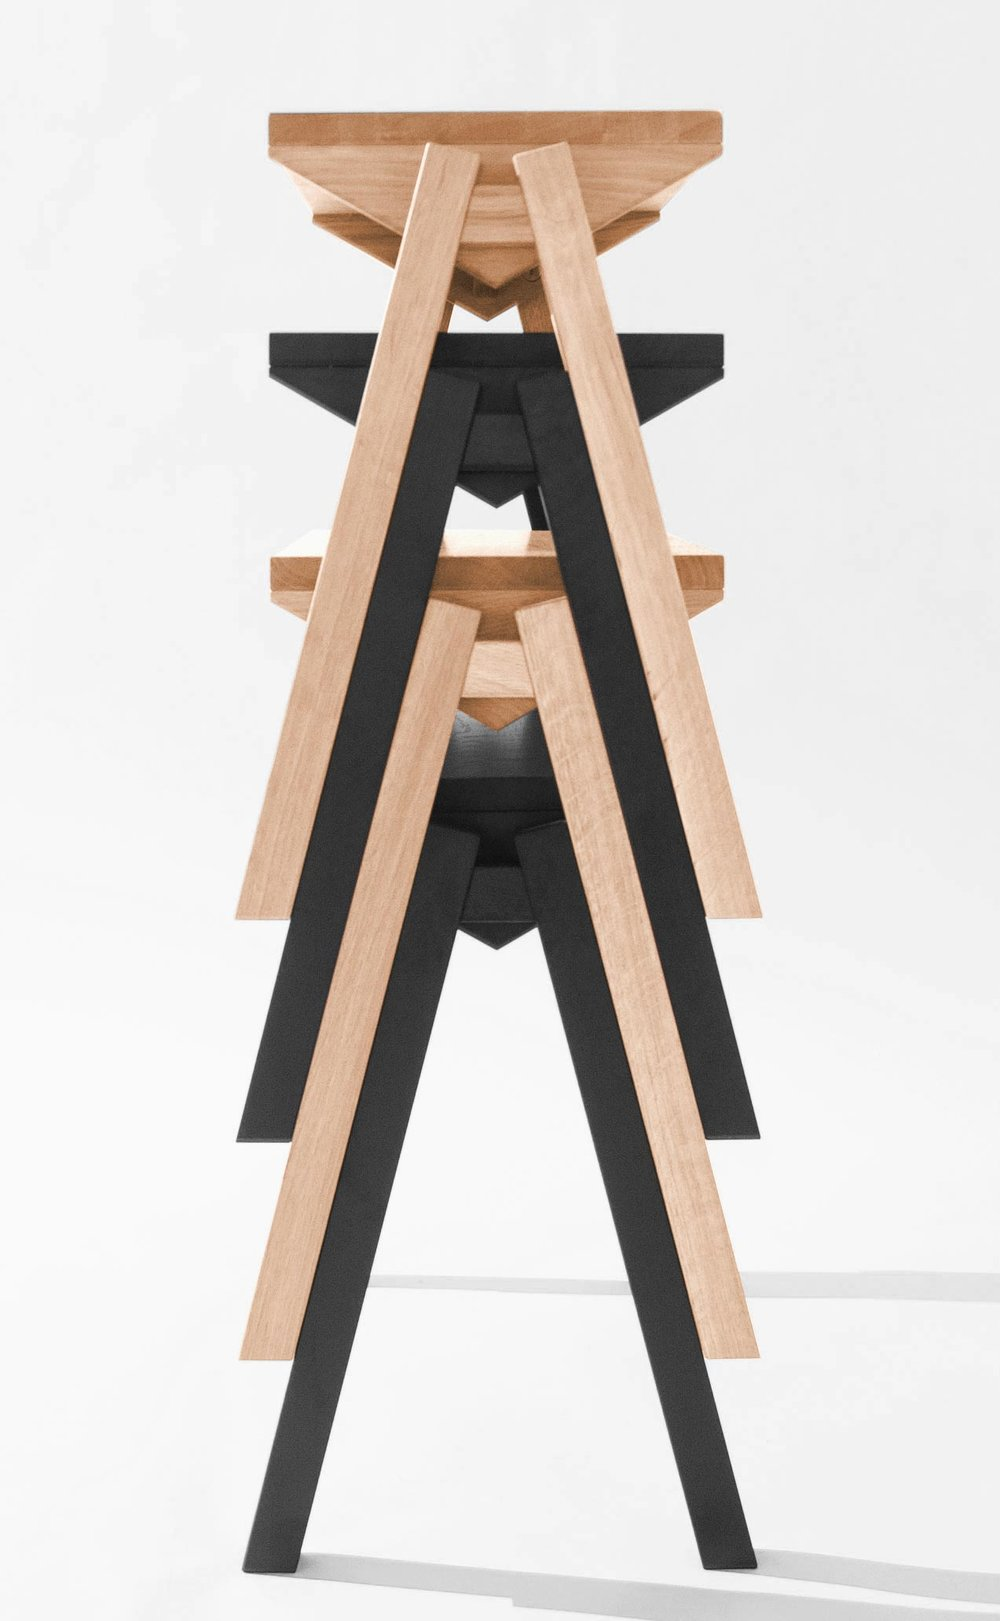 Colt Stool   designed by Isaac Krady